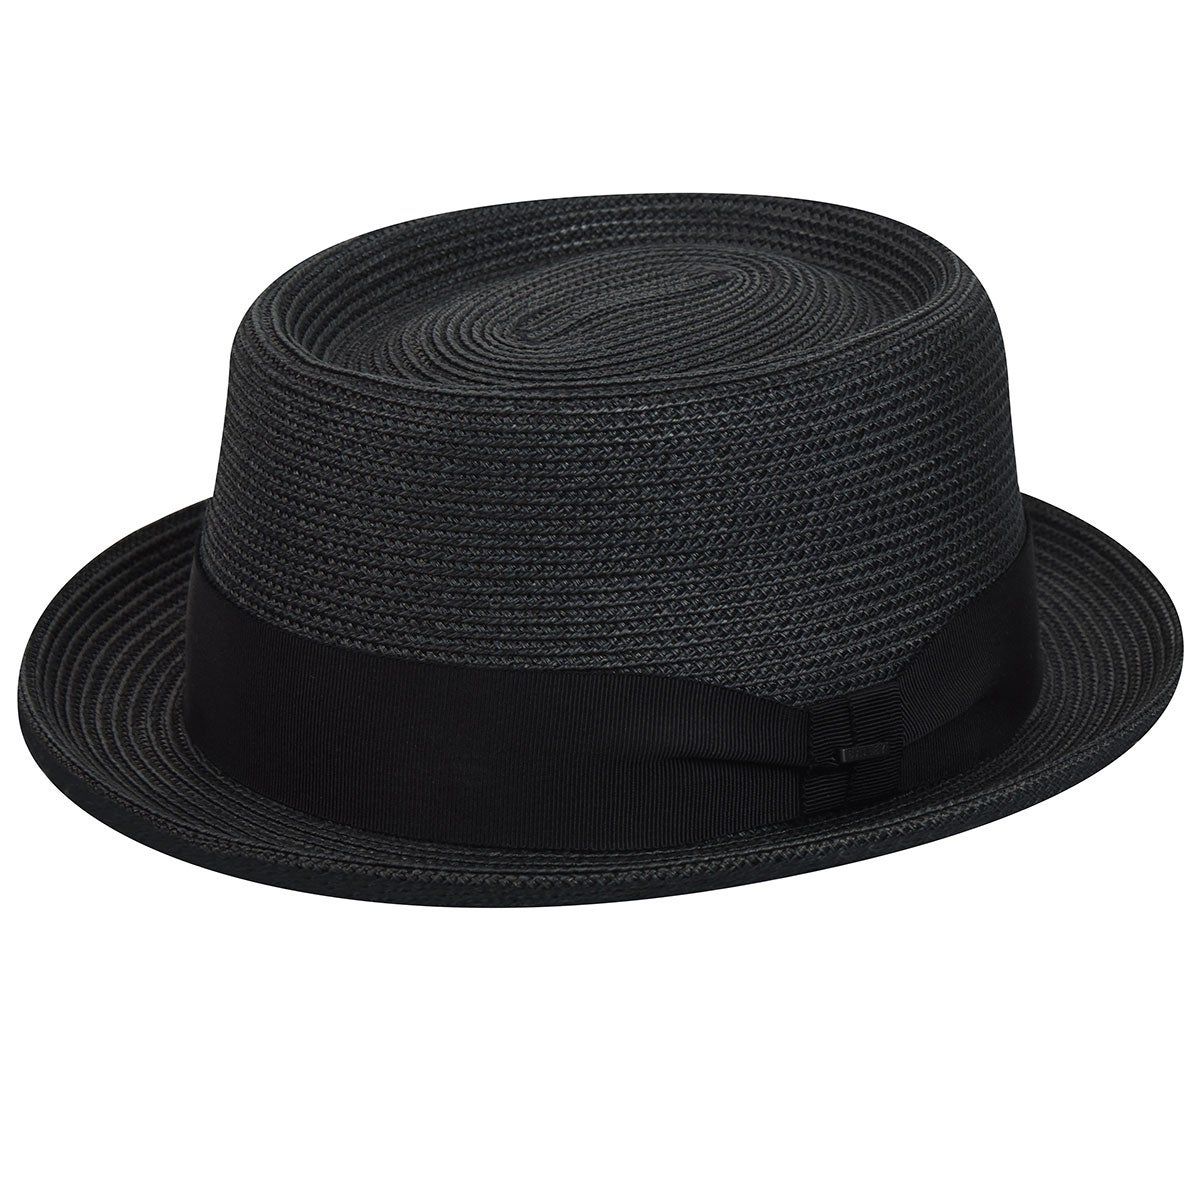 1940s Mens Hats | Fedora, Homburg, Pork Pie Hats Waits Braided Pork Pie $80.00 AT vintagedancer.com